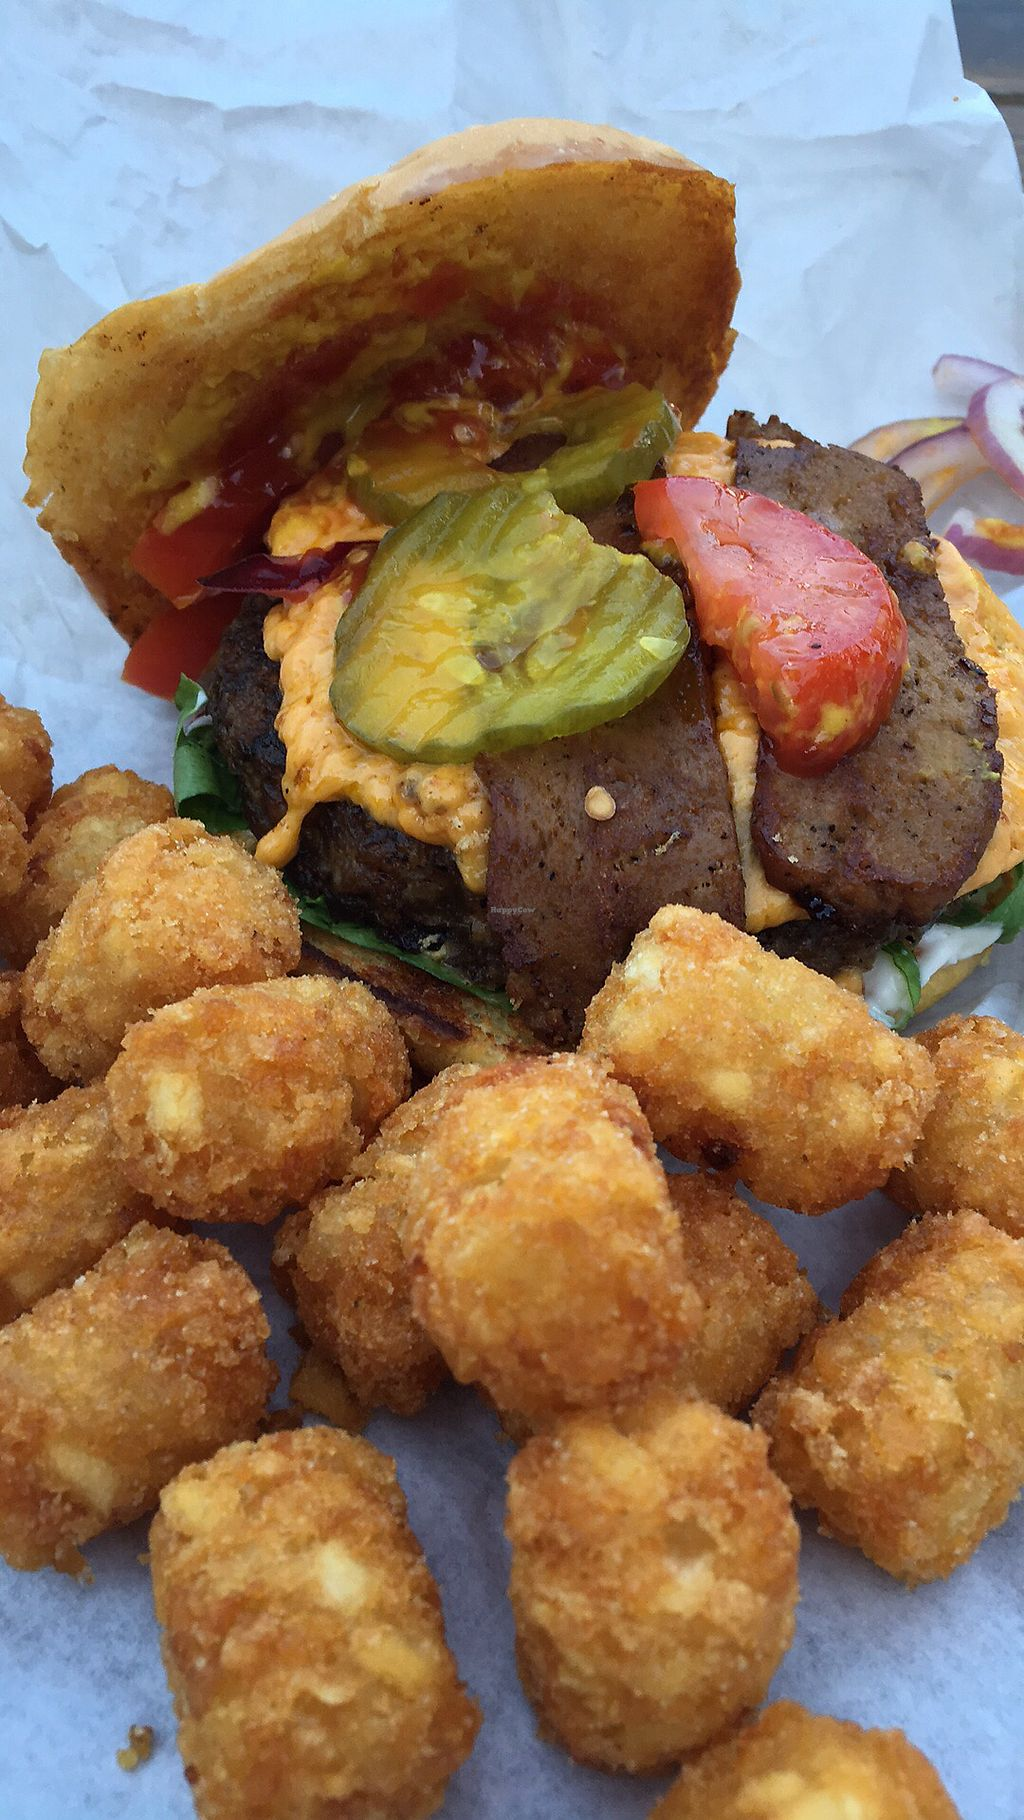 """Photo of Arlo's Food Truck - Cheerup Charlie's  by <a href=""""/members/profile/LeahLinJones"""">LeahLinJones</a> <br/>Bac'n Cheeze Burger <br/> July 1, 2017  - <a href='/contact/abuse/image/29535/275353'>Report</a>"""